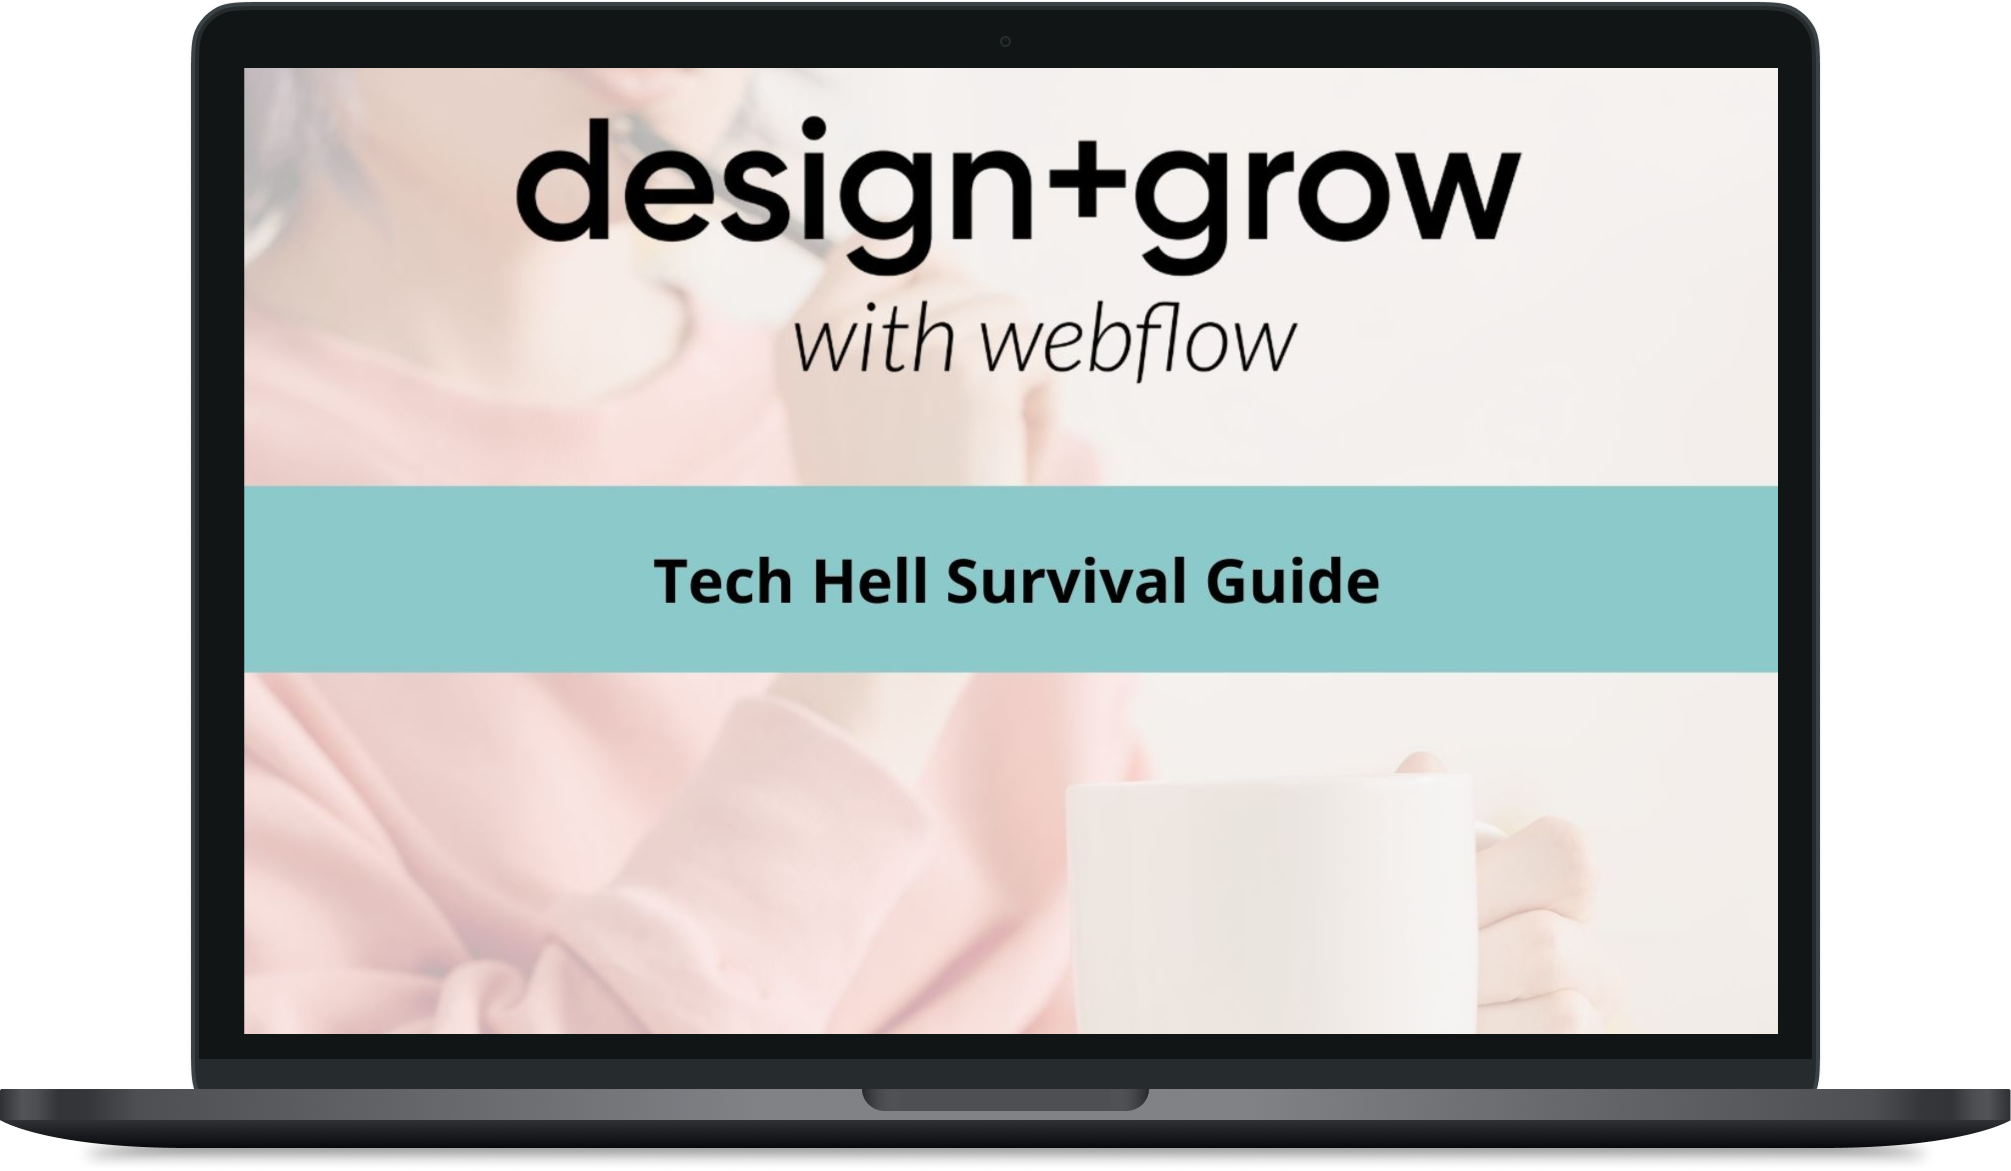 Tech Hell Survival Guide